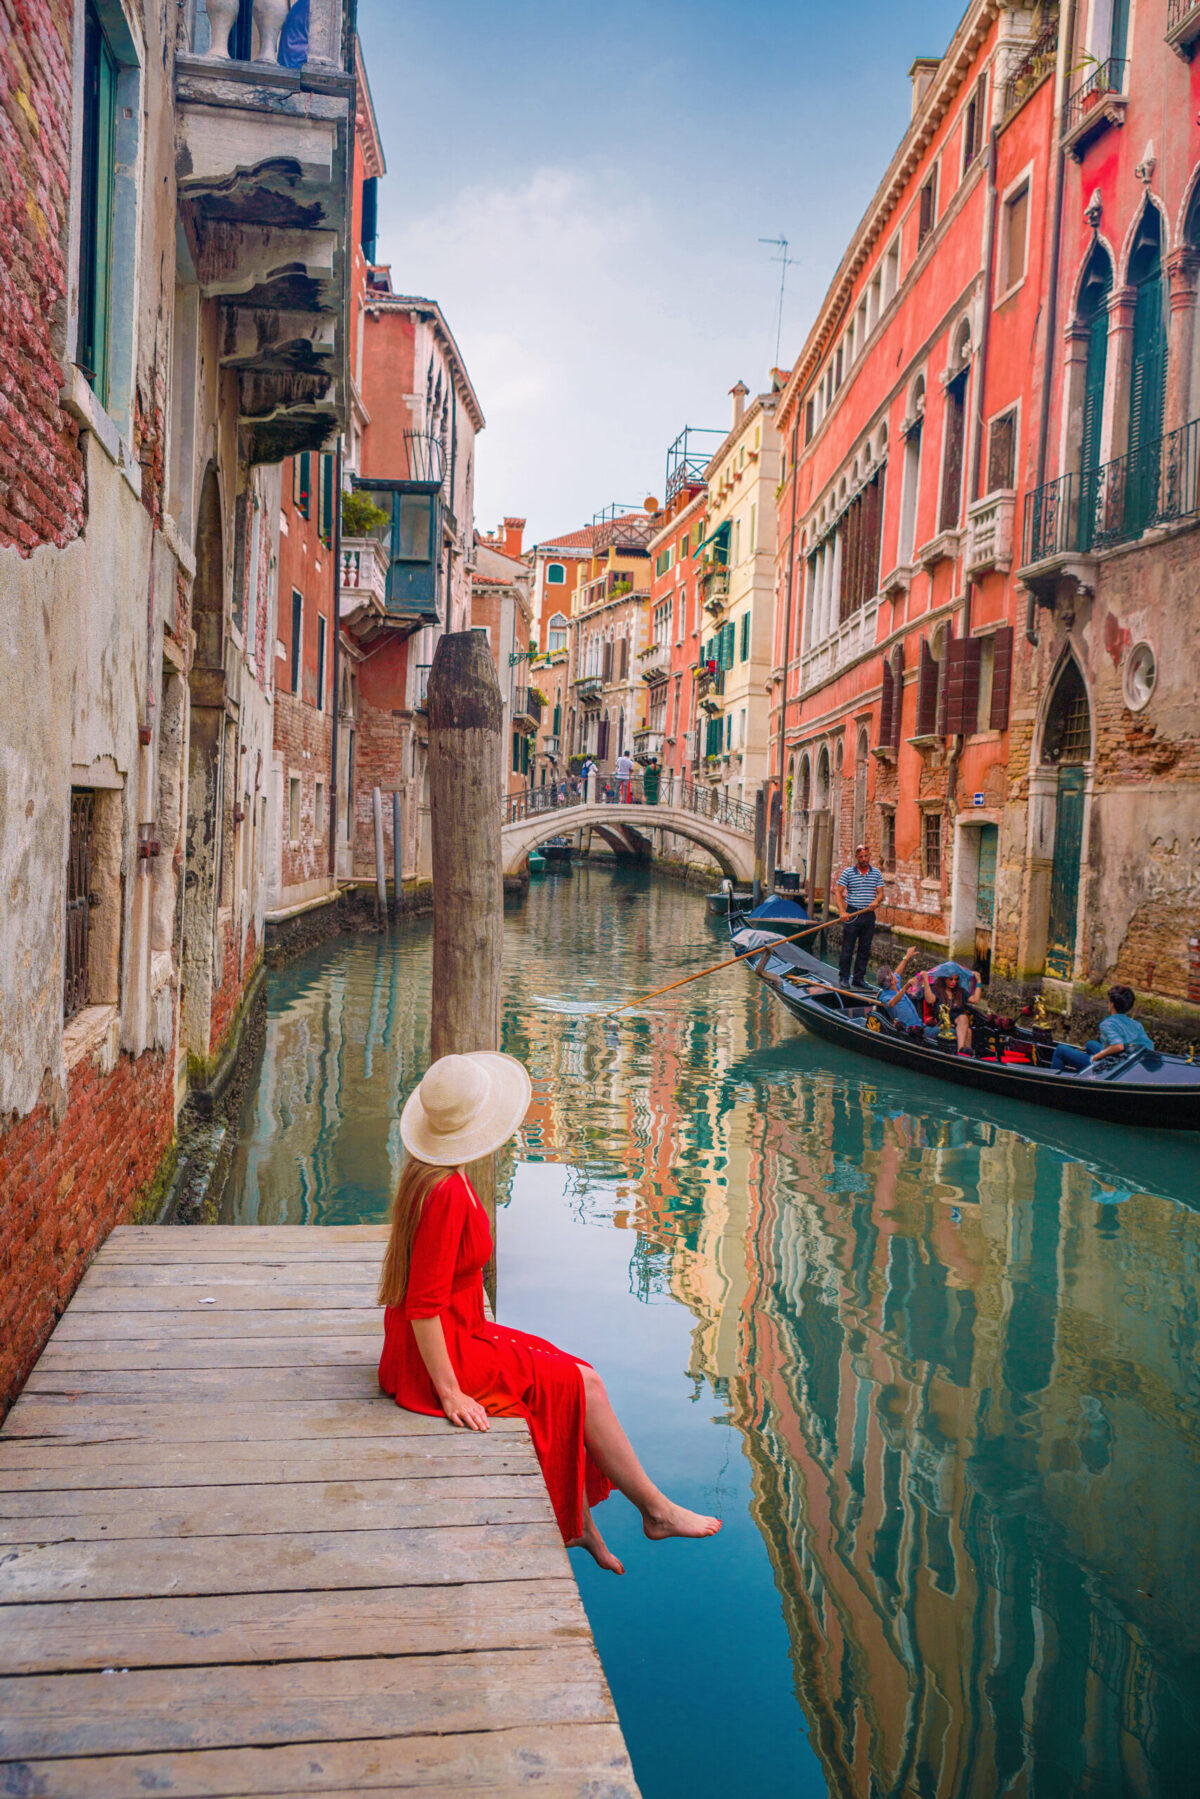 Famous Instagrammable Dock behind a hotel in Venice | best Instagram spots in Venice | Venice photo locations | Italy travel tips | Tips for planning a trip to Italy | Venice picture locations